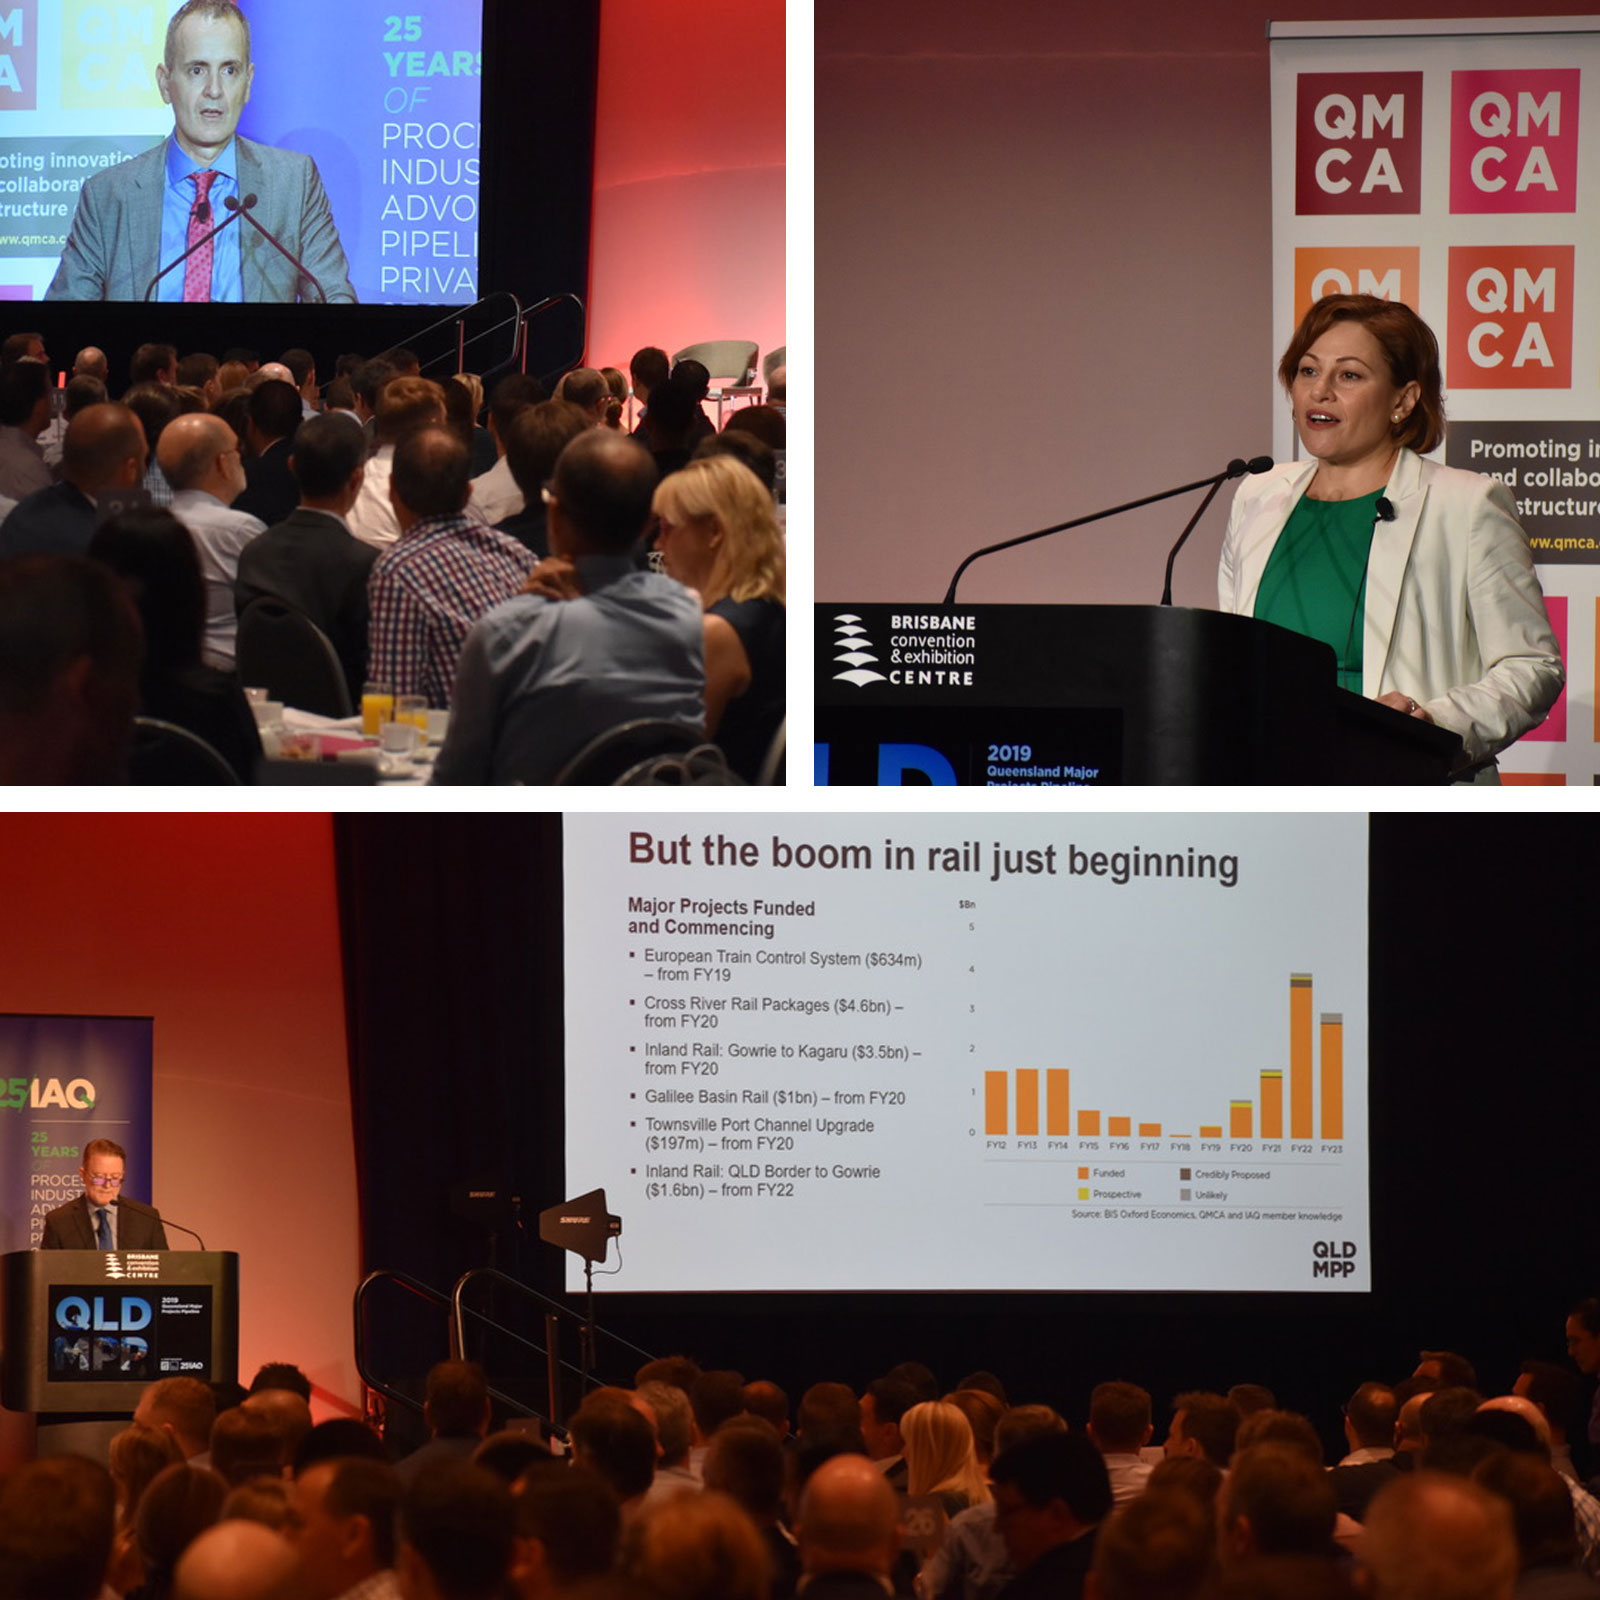 QMCA's chief executive Jon Davies (top left), Deputy Premier The Hon Jackie Trad (top right), BIS Oxford Economics associate director Adrian Hart (bottom) launching the 2019 Queensland Major Projects Pipeline Report in Brisbane.